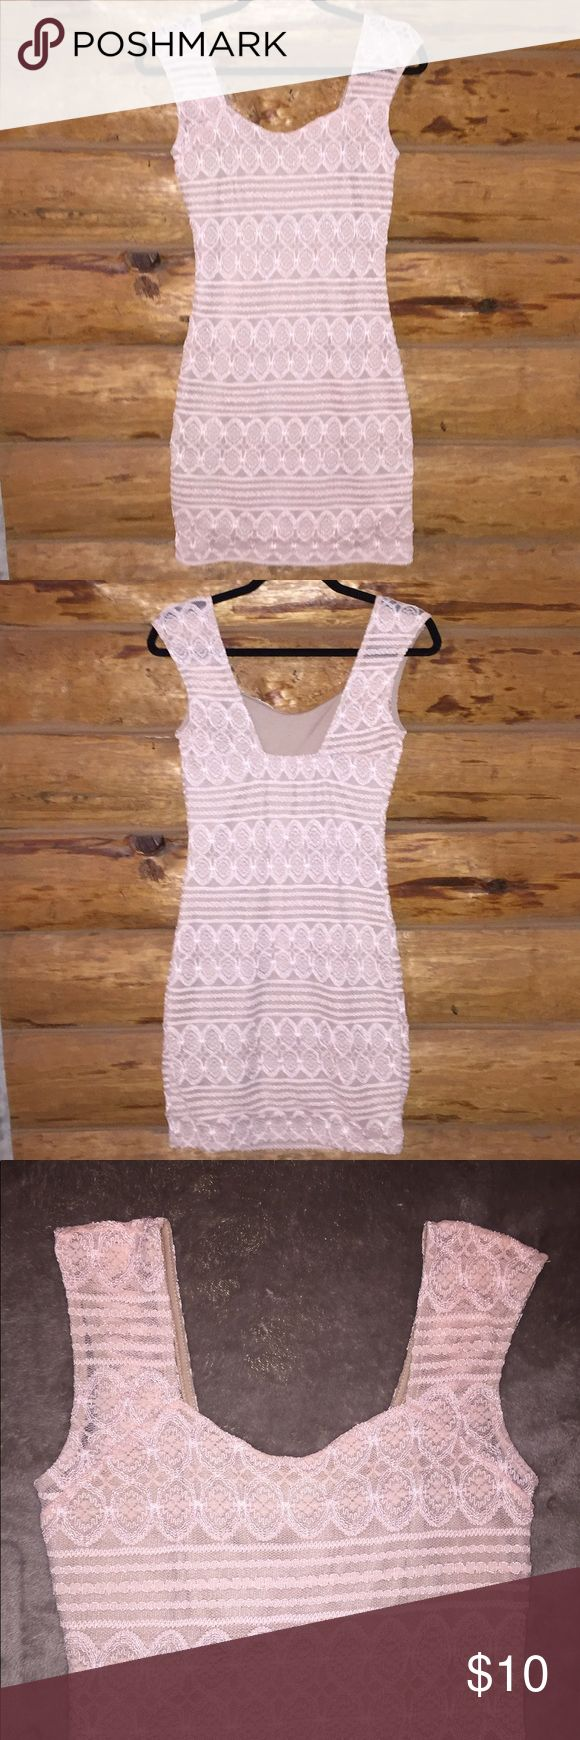 Pale Pink Body Central Dress w/ Nude Lining This Pale Pink Body Central Bodycon Dress is a size Medium but it's size tag has been removed. It is in great condition, only worn once. It has a nude lining which prevents seeing through the Pale Pink Lace. Body Central Dresses Mini